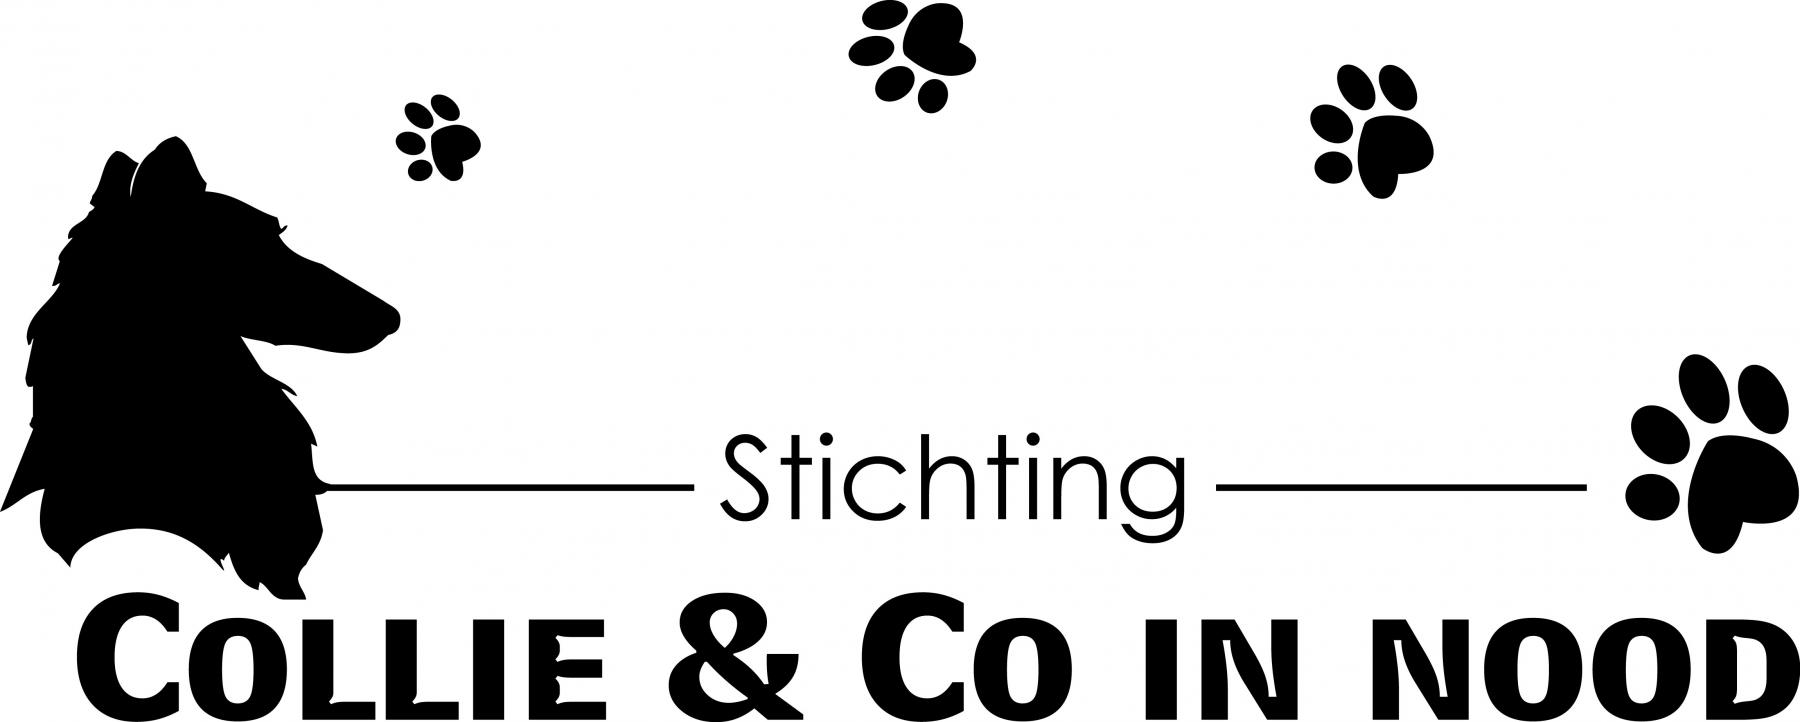 STICHTING COLLIE & CO IN NOOD